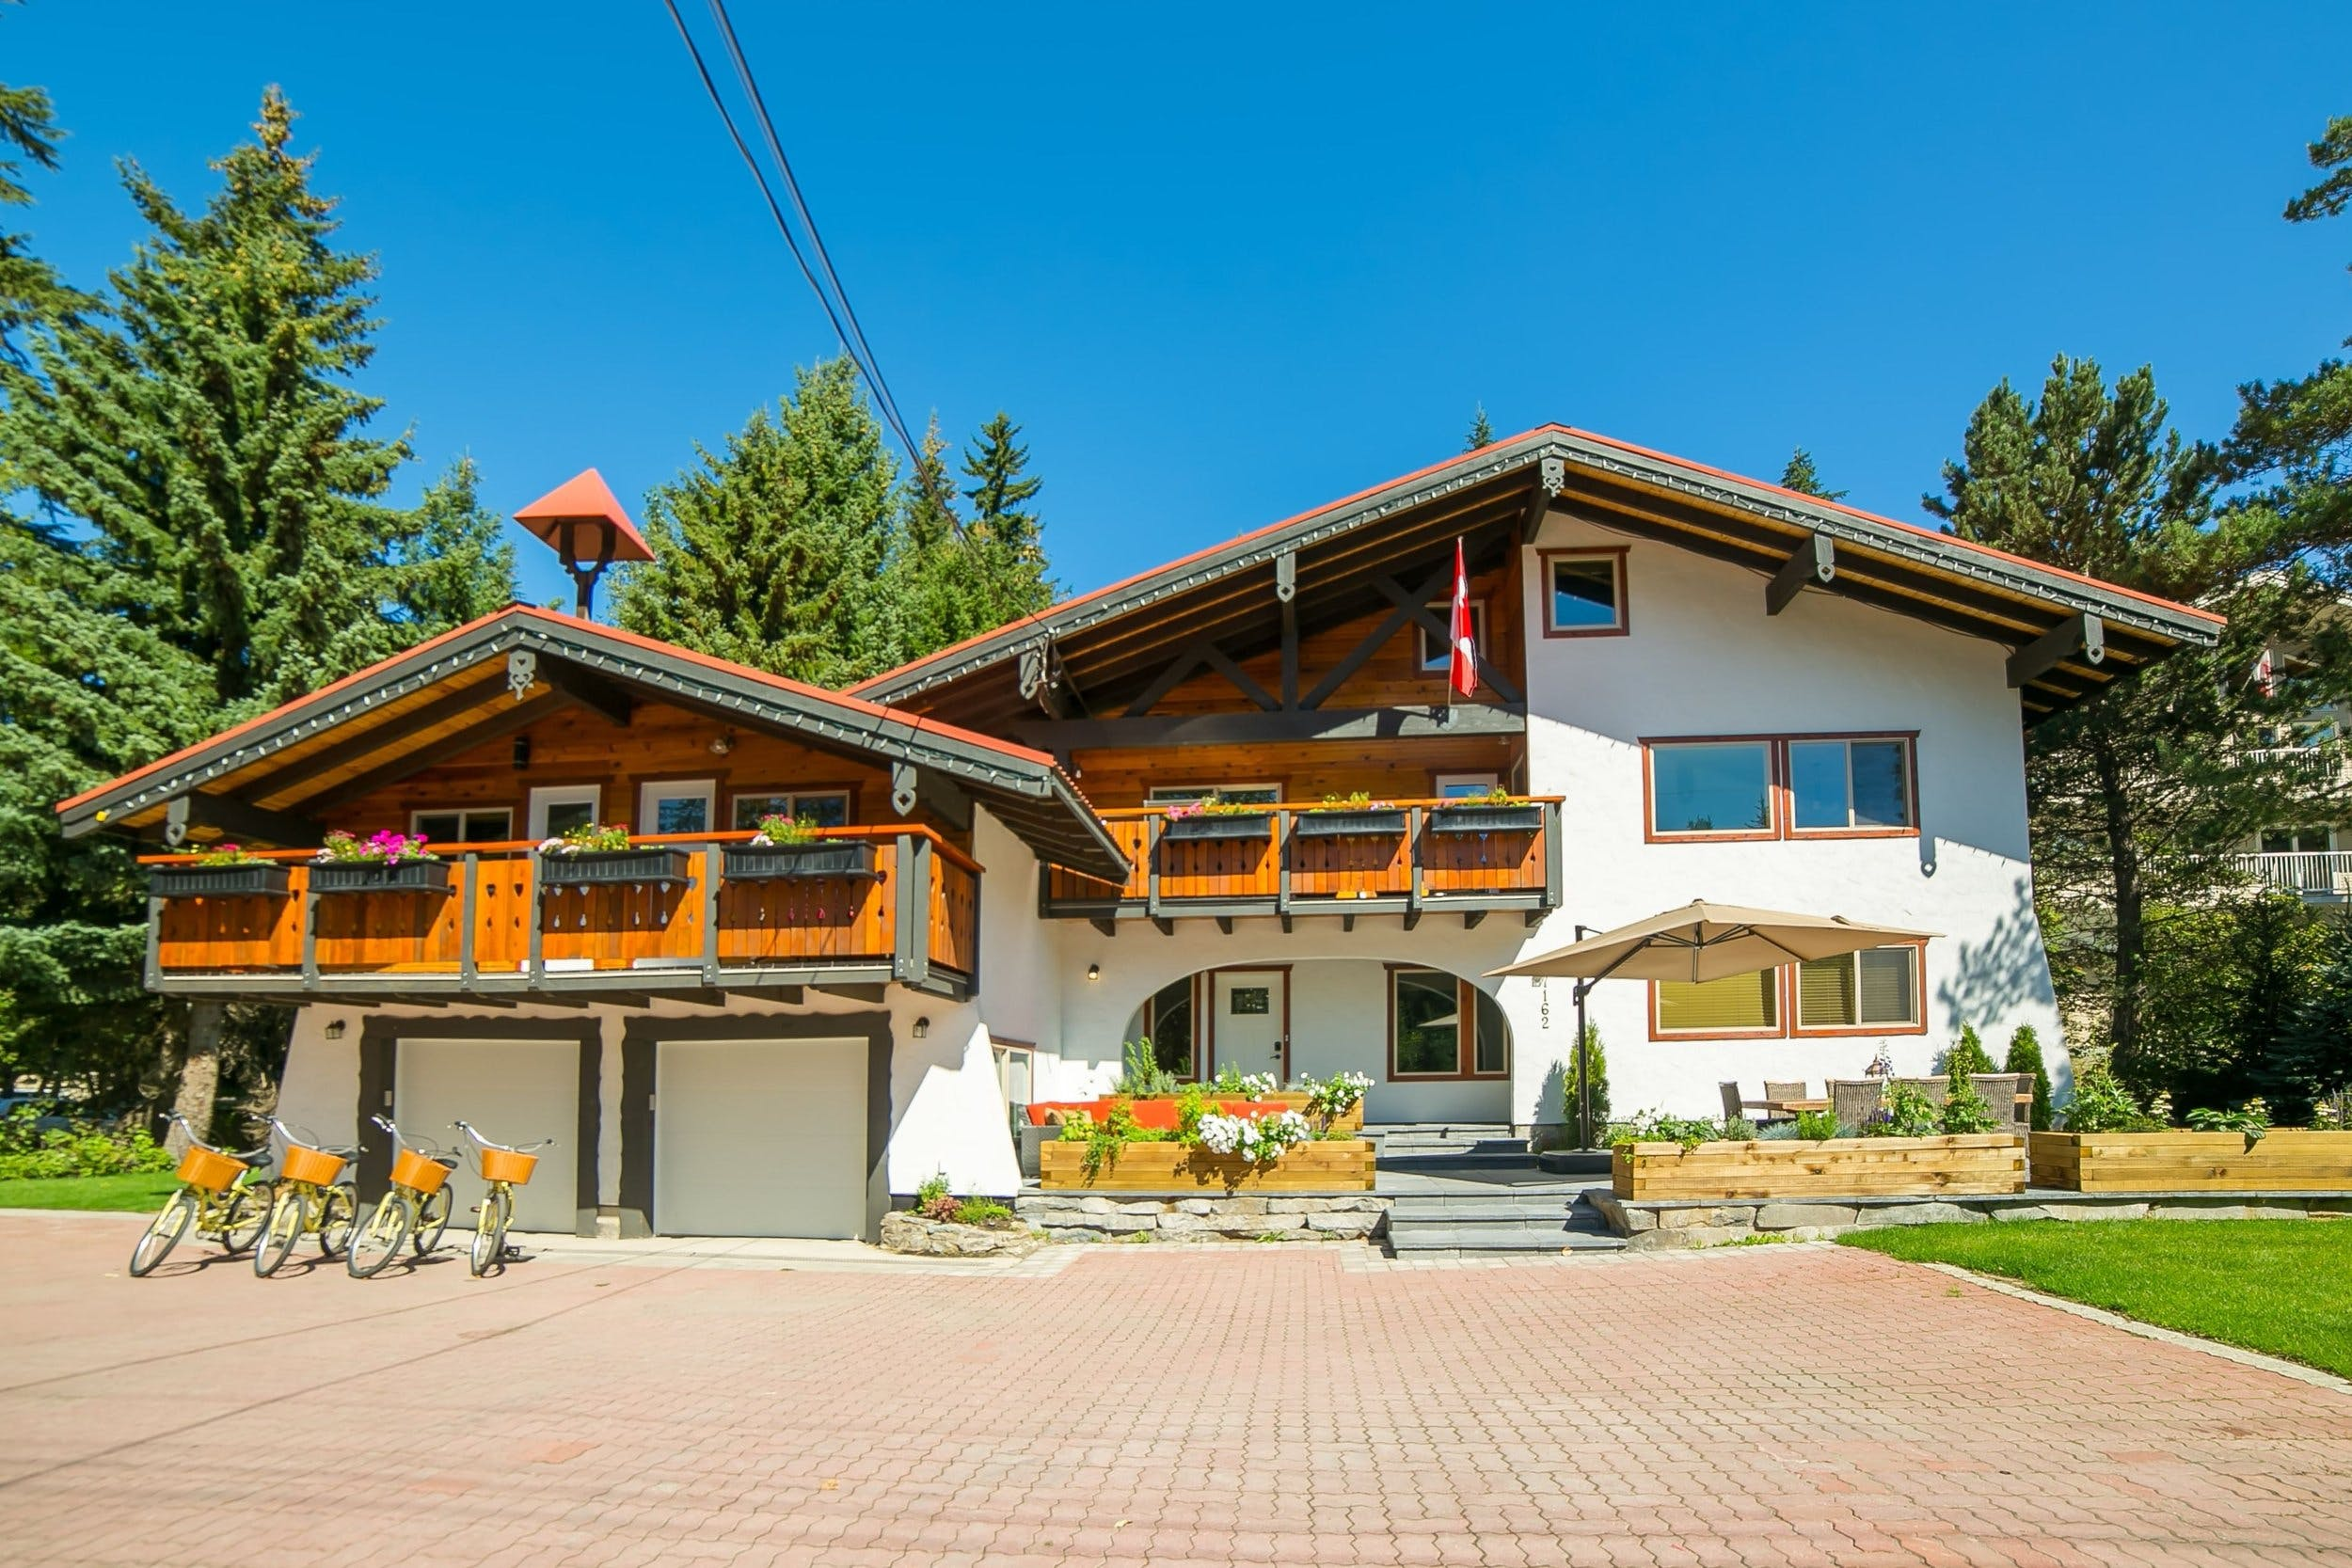 CHALET EDELWEISS, a swiss experience in Whistler